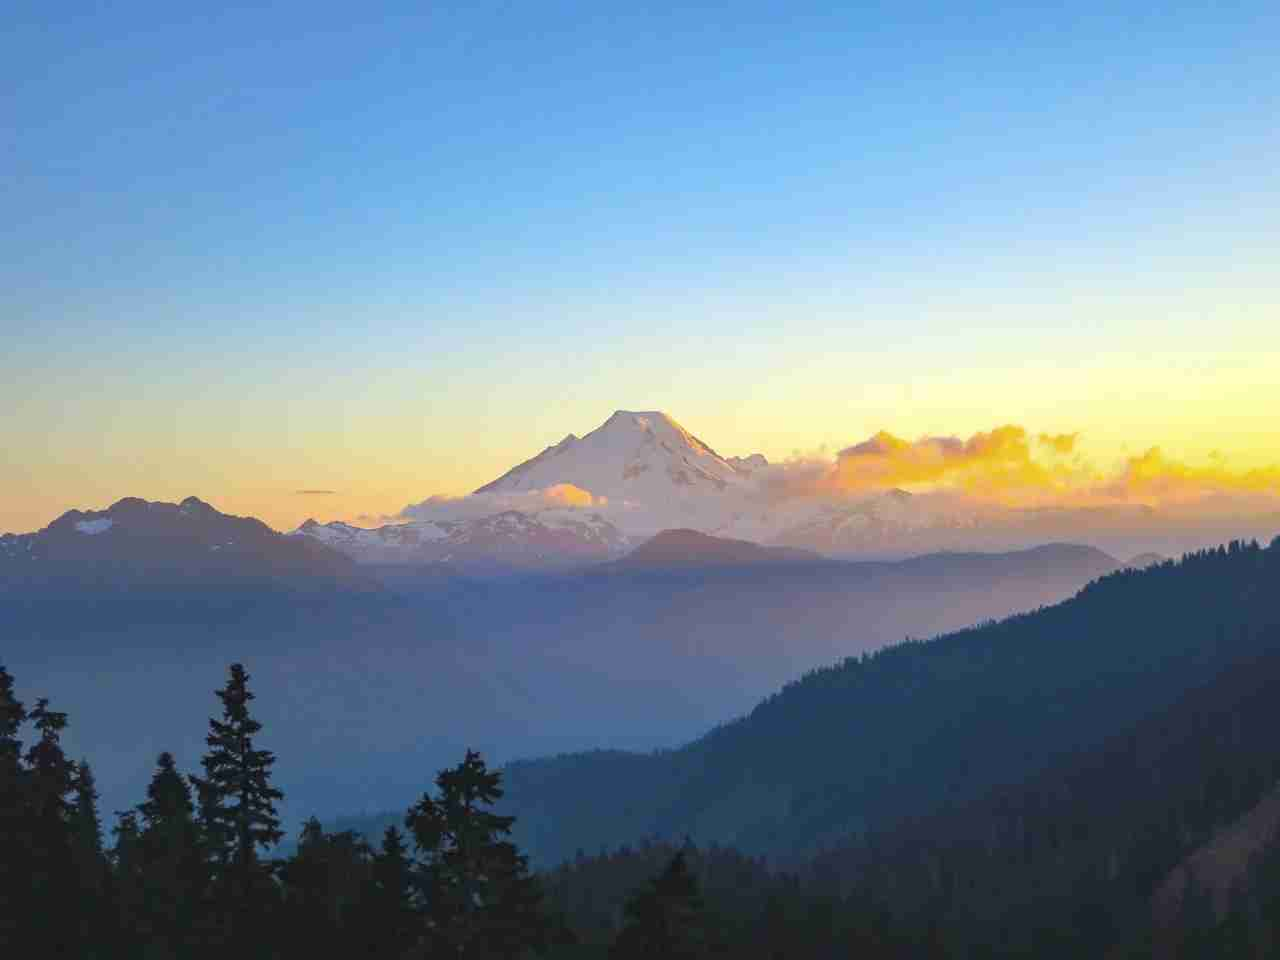 Mount Baker, WA. (Photo via Shutterstock)